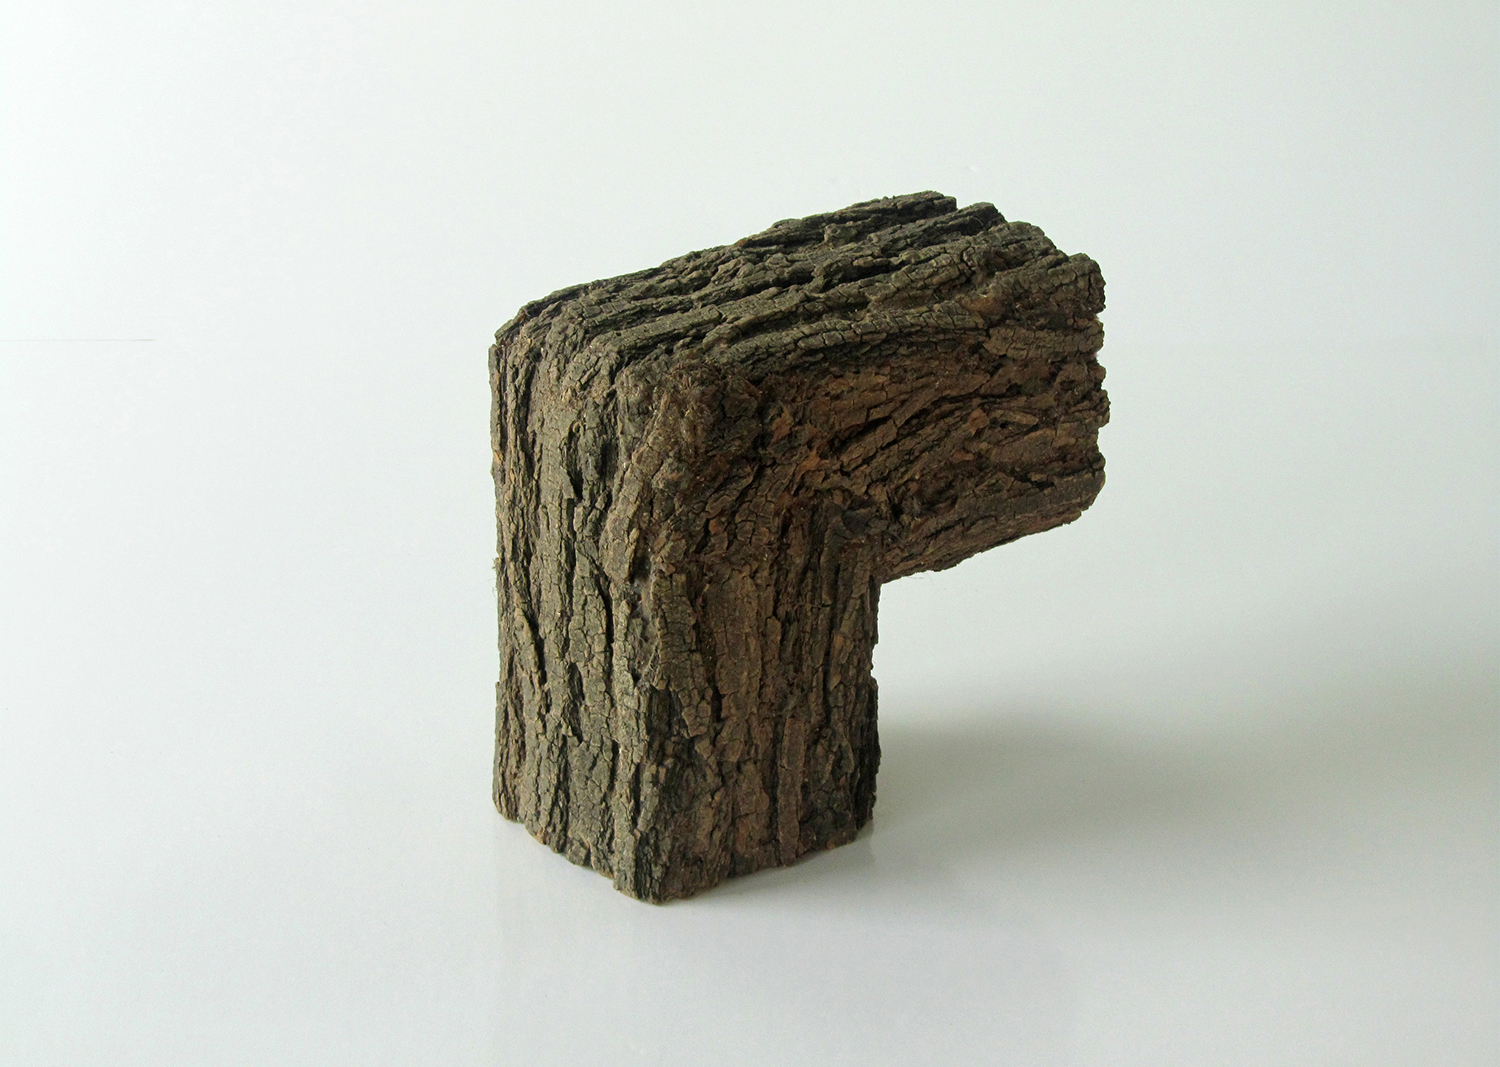 WOLFS + JUNG, Elements, natural bark to be casted in bronze, 25Wx25Dx25~80Hcm, 2018@WOLFS + JUNG, Elements, natural bark to be casted in bronze, 25Wx25Dx25~80Hcm, 2018